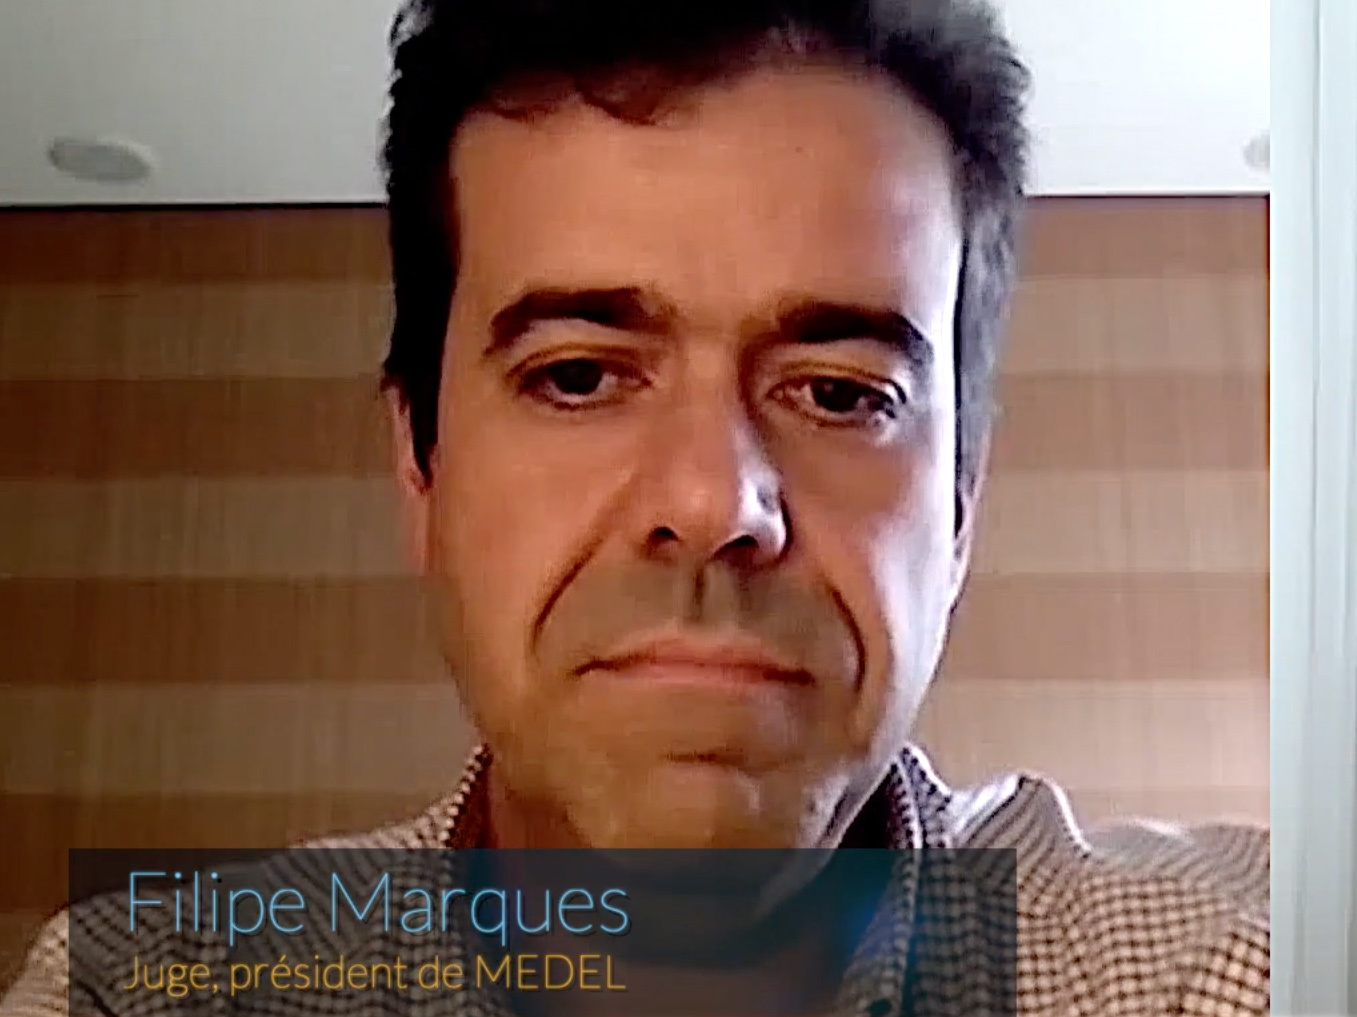 Filipe Marques